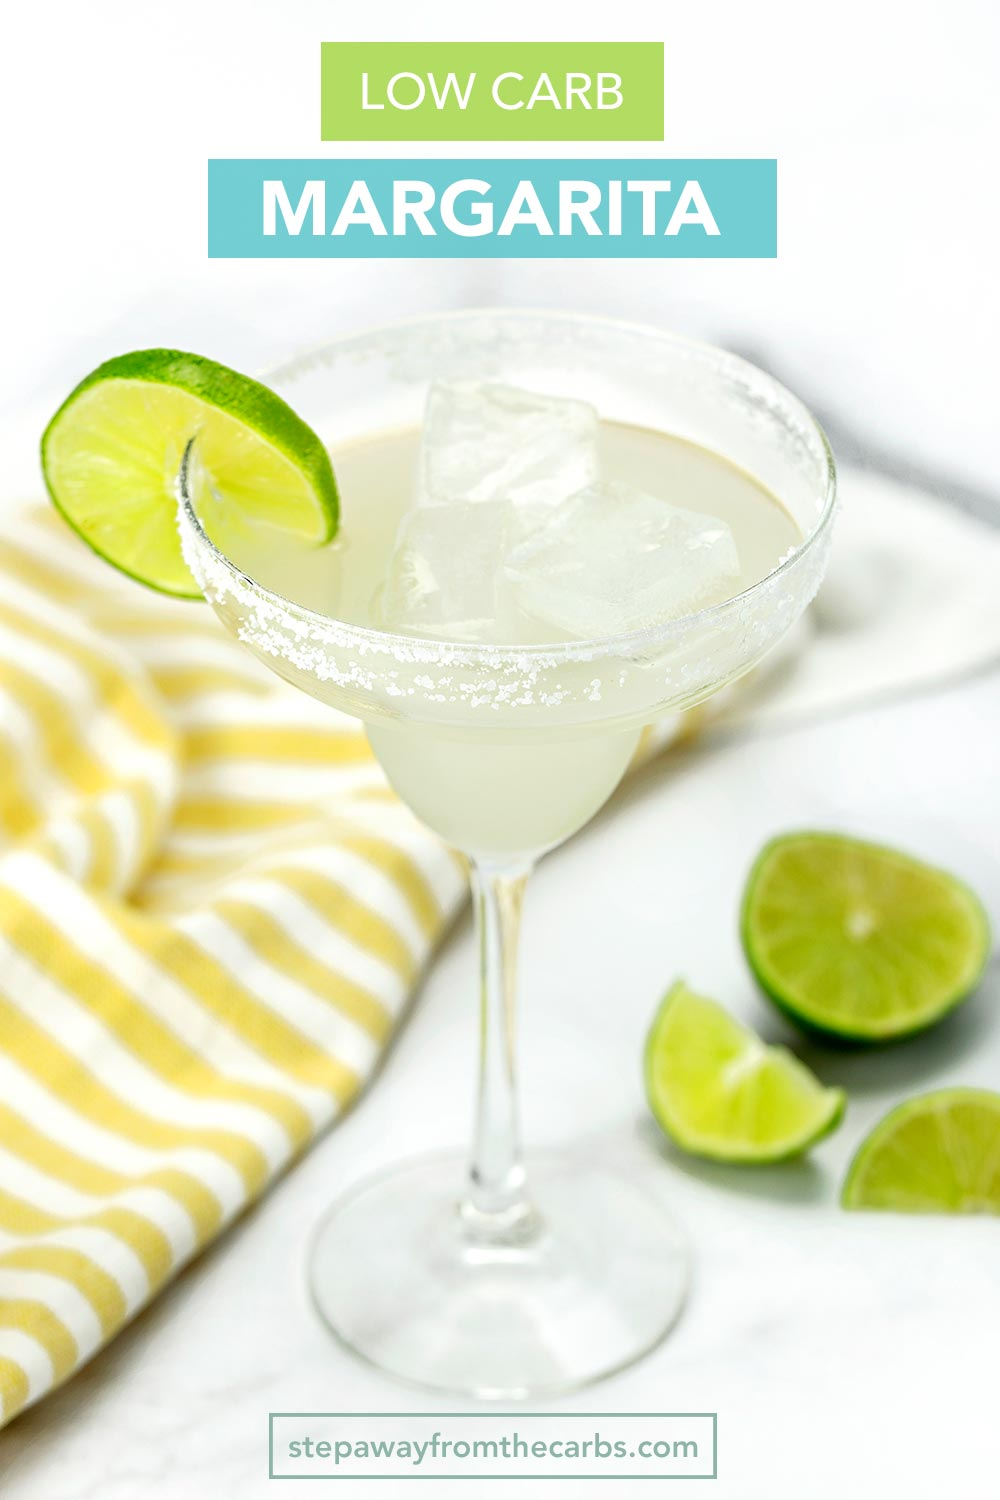 Low Carb Margarita with video tutorial